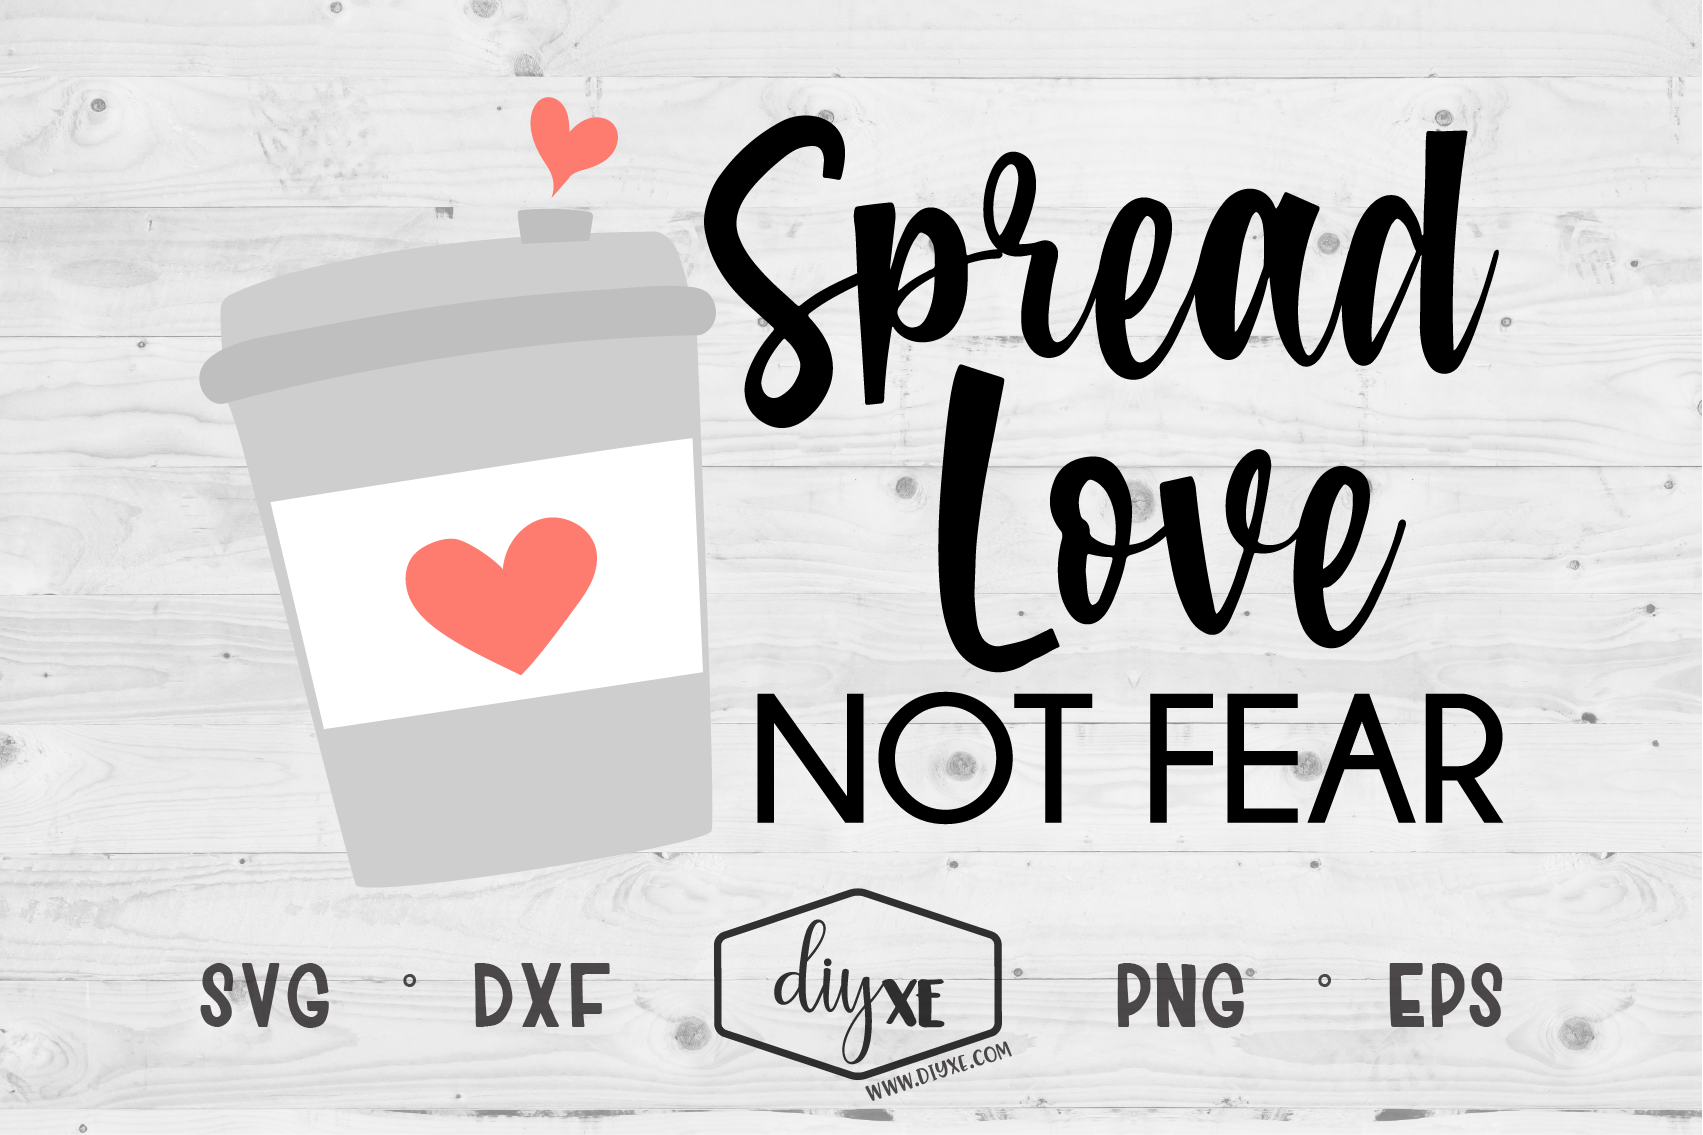 Download Free Spread Love Not Fear Graphic By Sheryl Holst Creative Fabrica for Cricut Explore, Silhouette and other cutting machines.